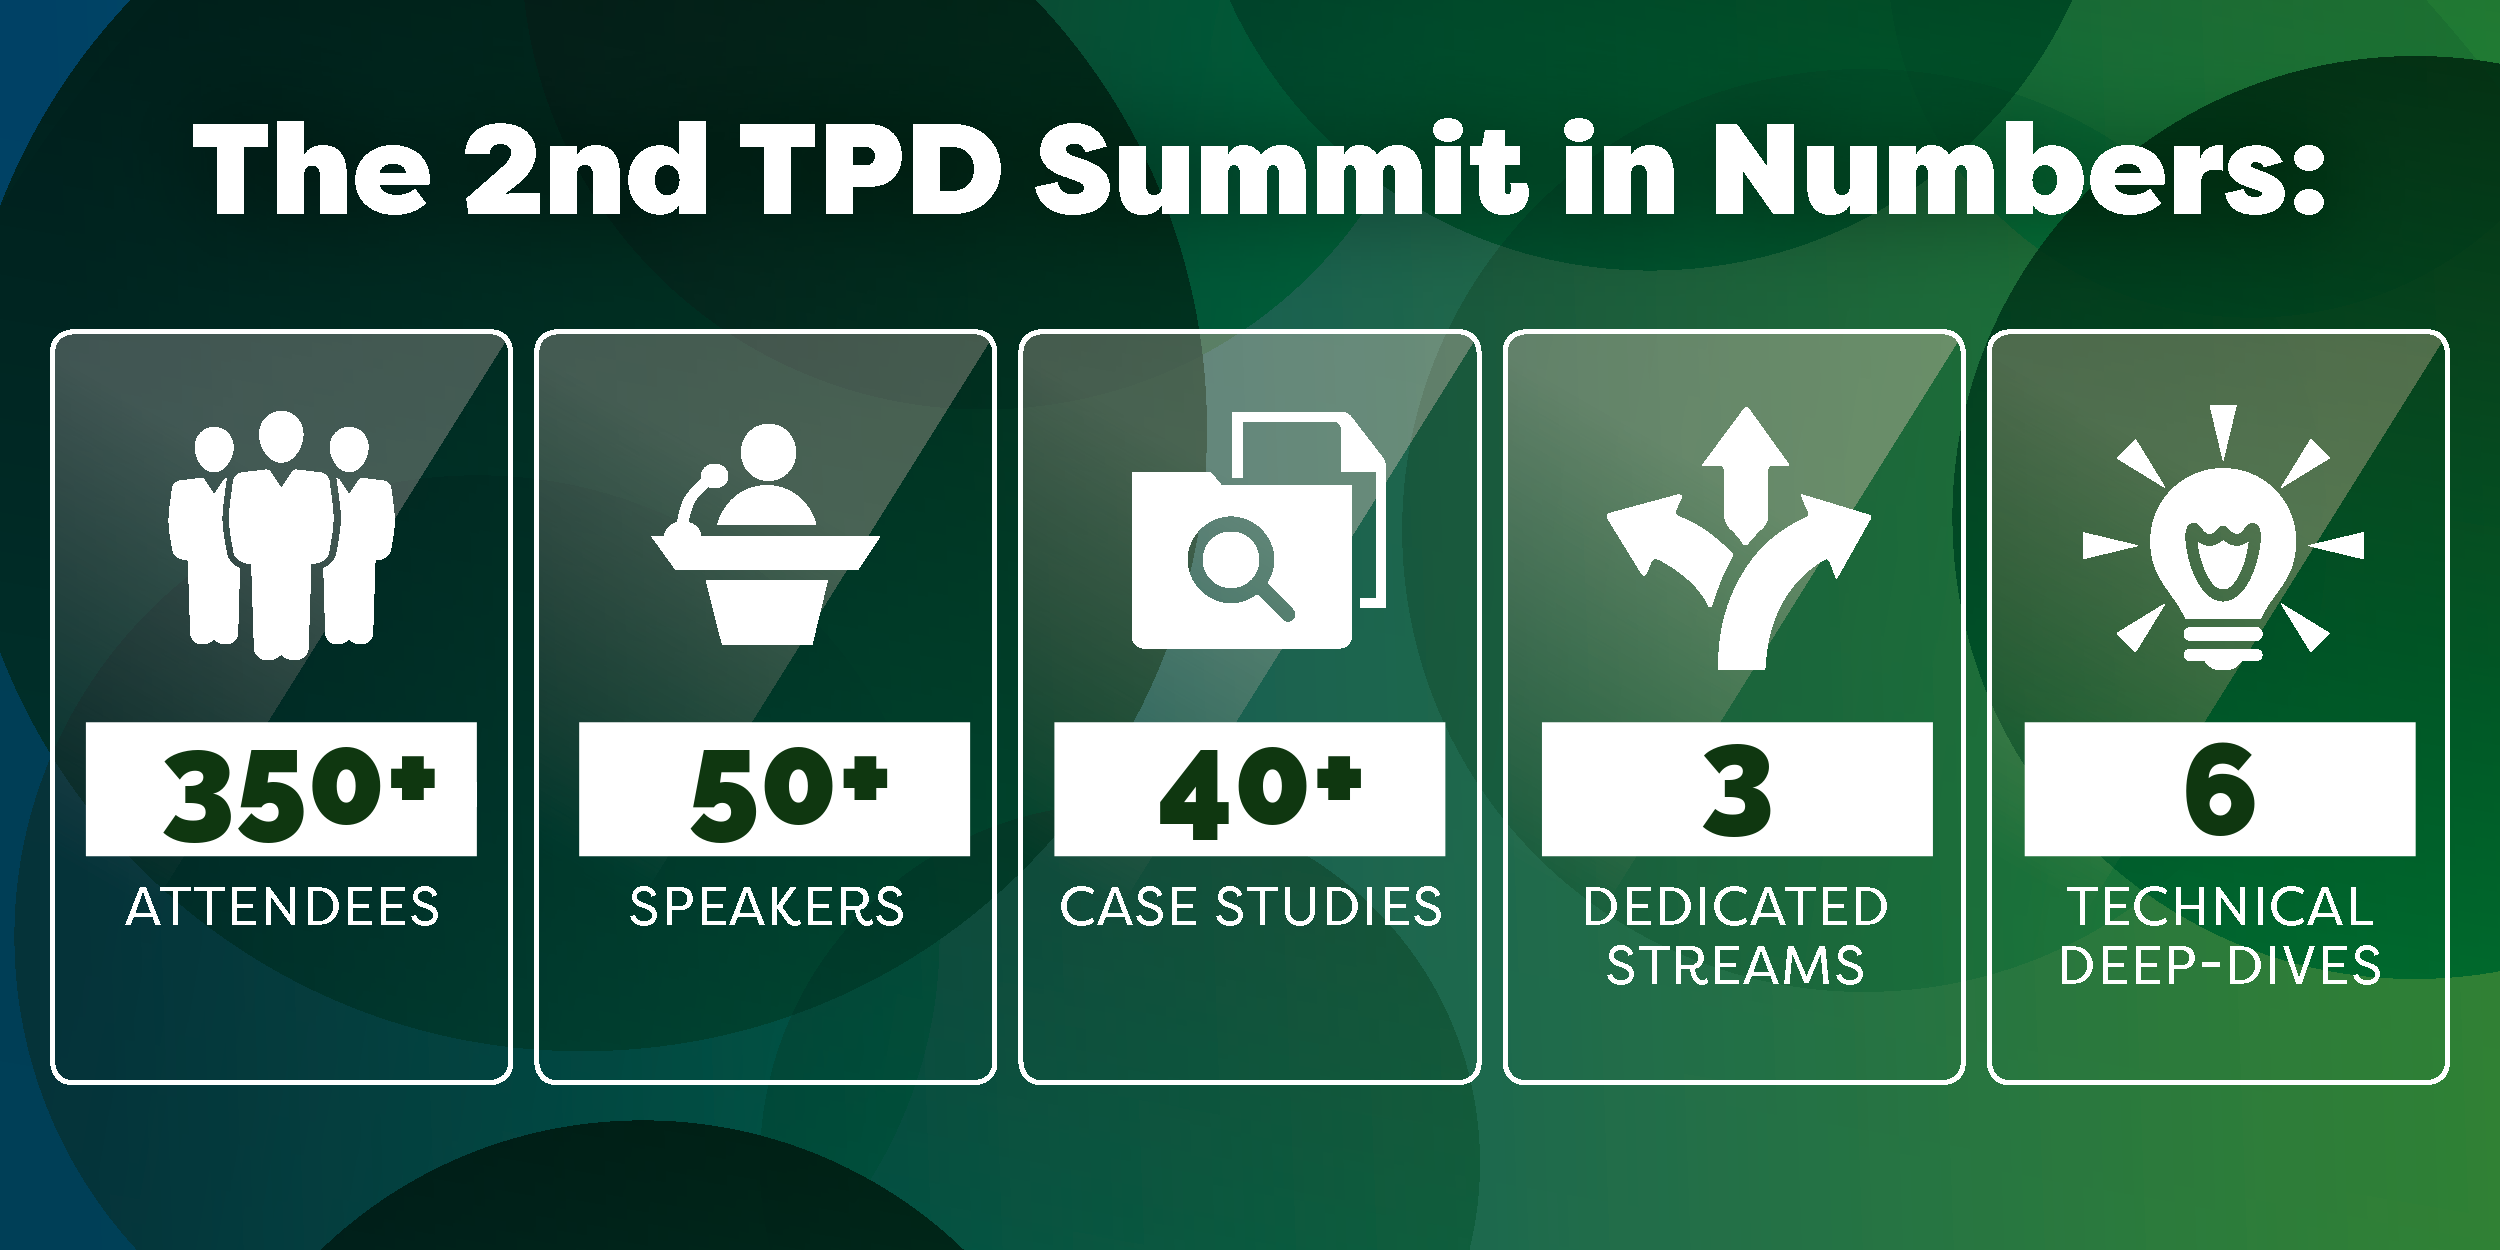 TPD in numbers - 350+